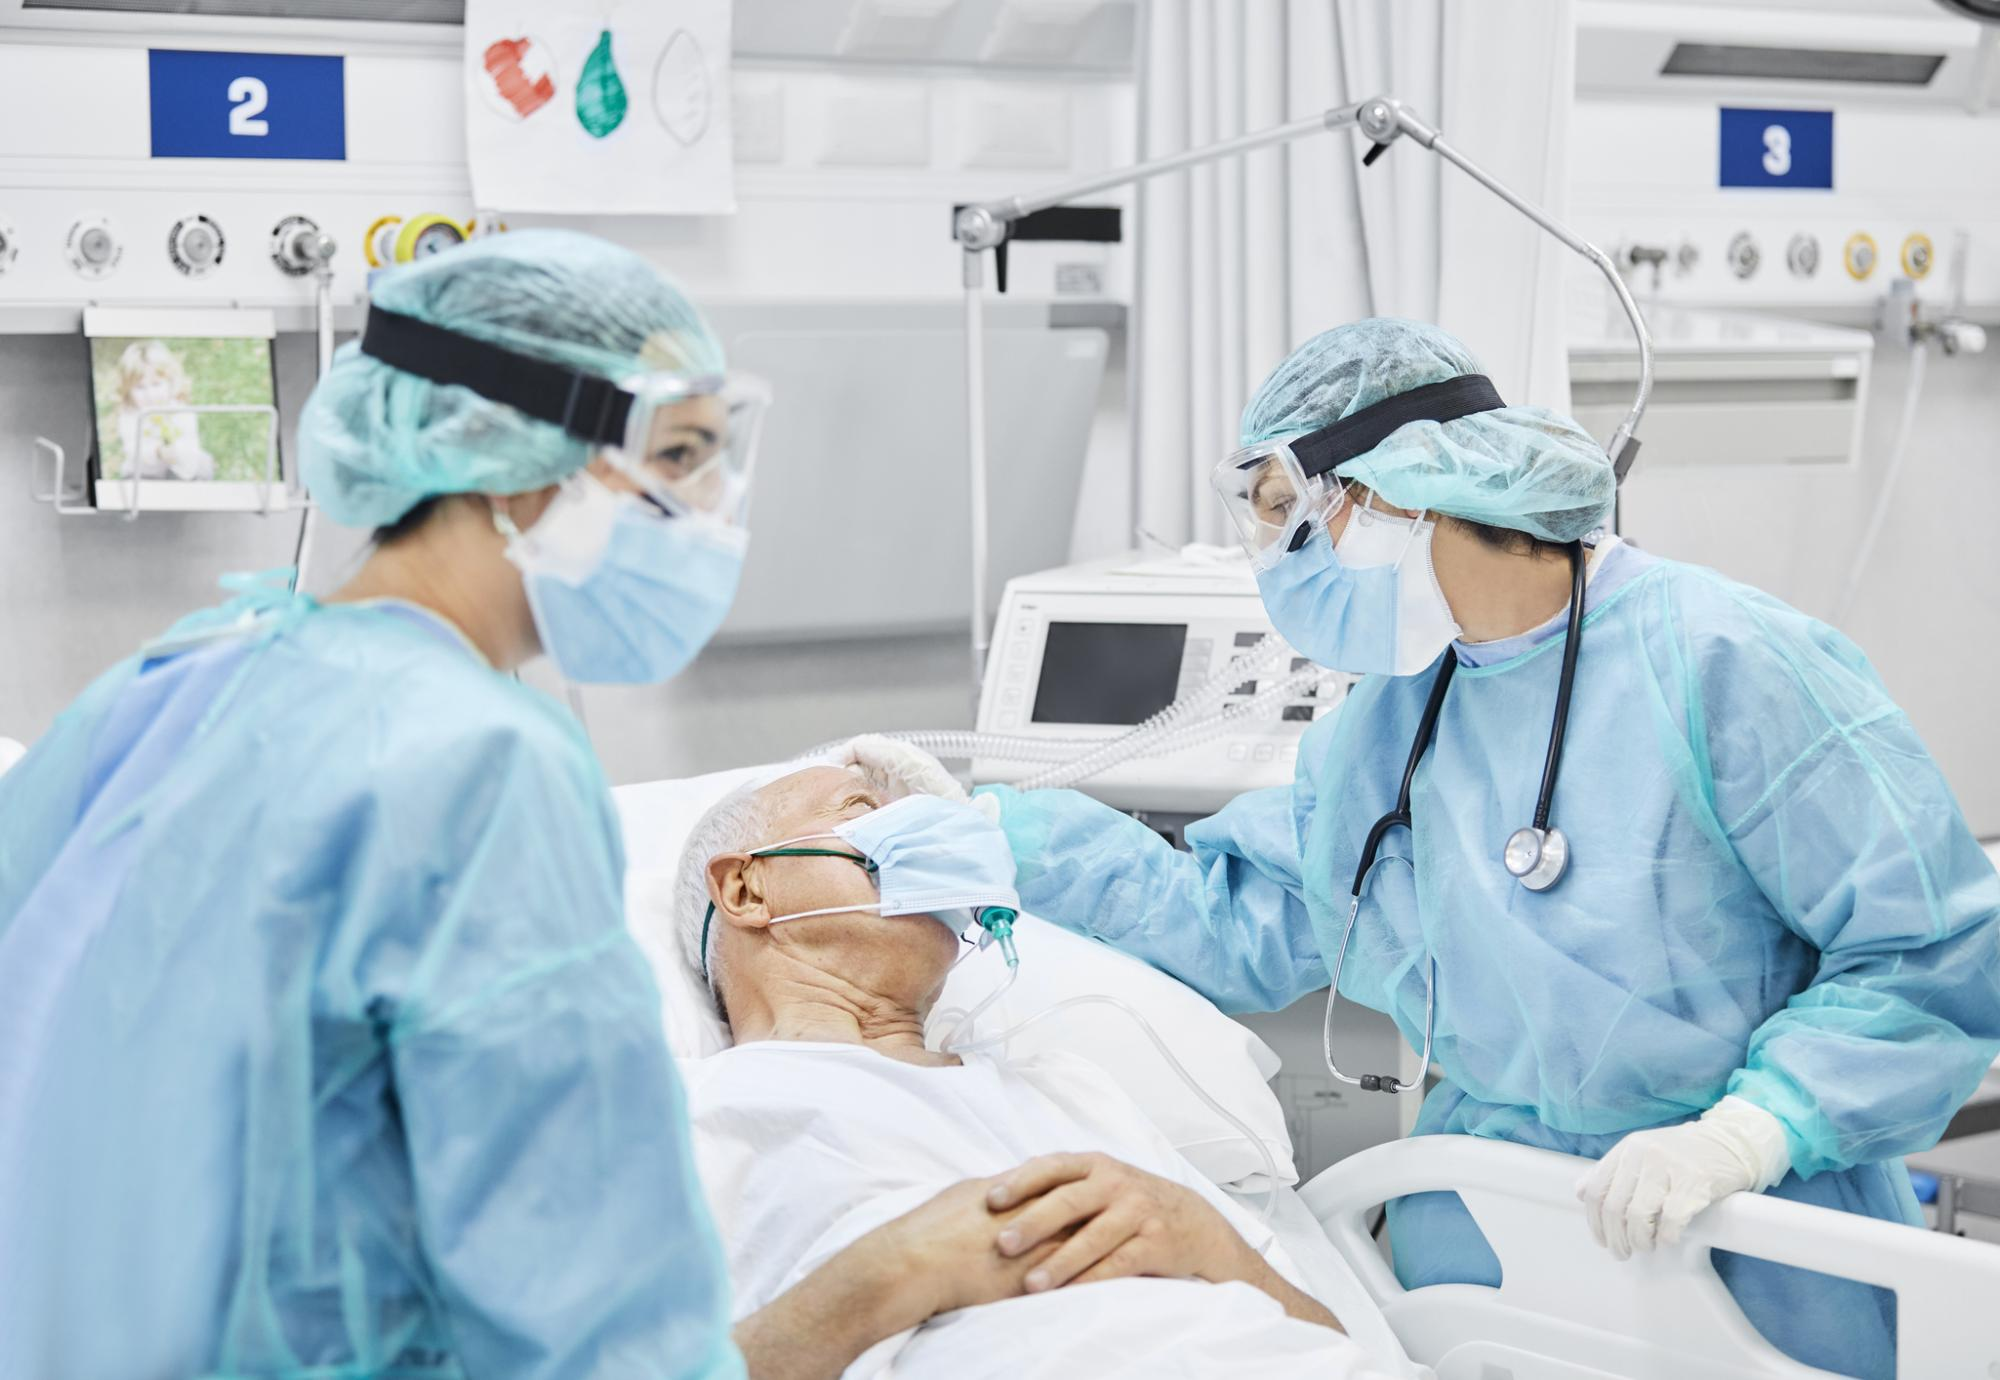 Medical professionals talking to a Covid patient